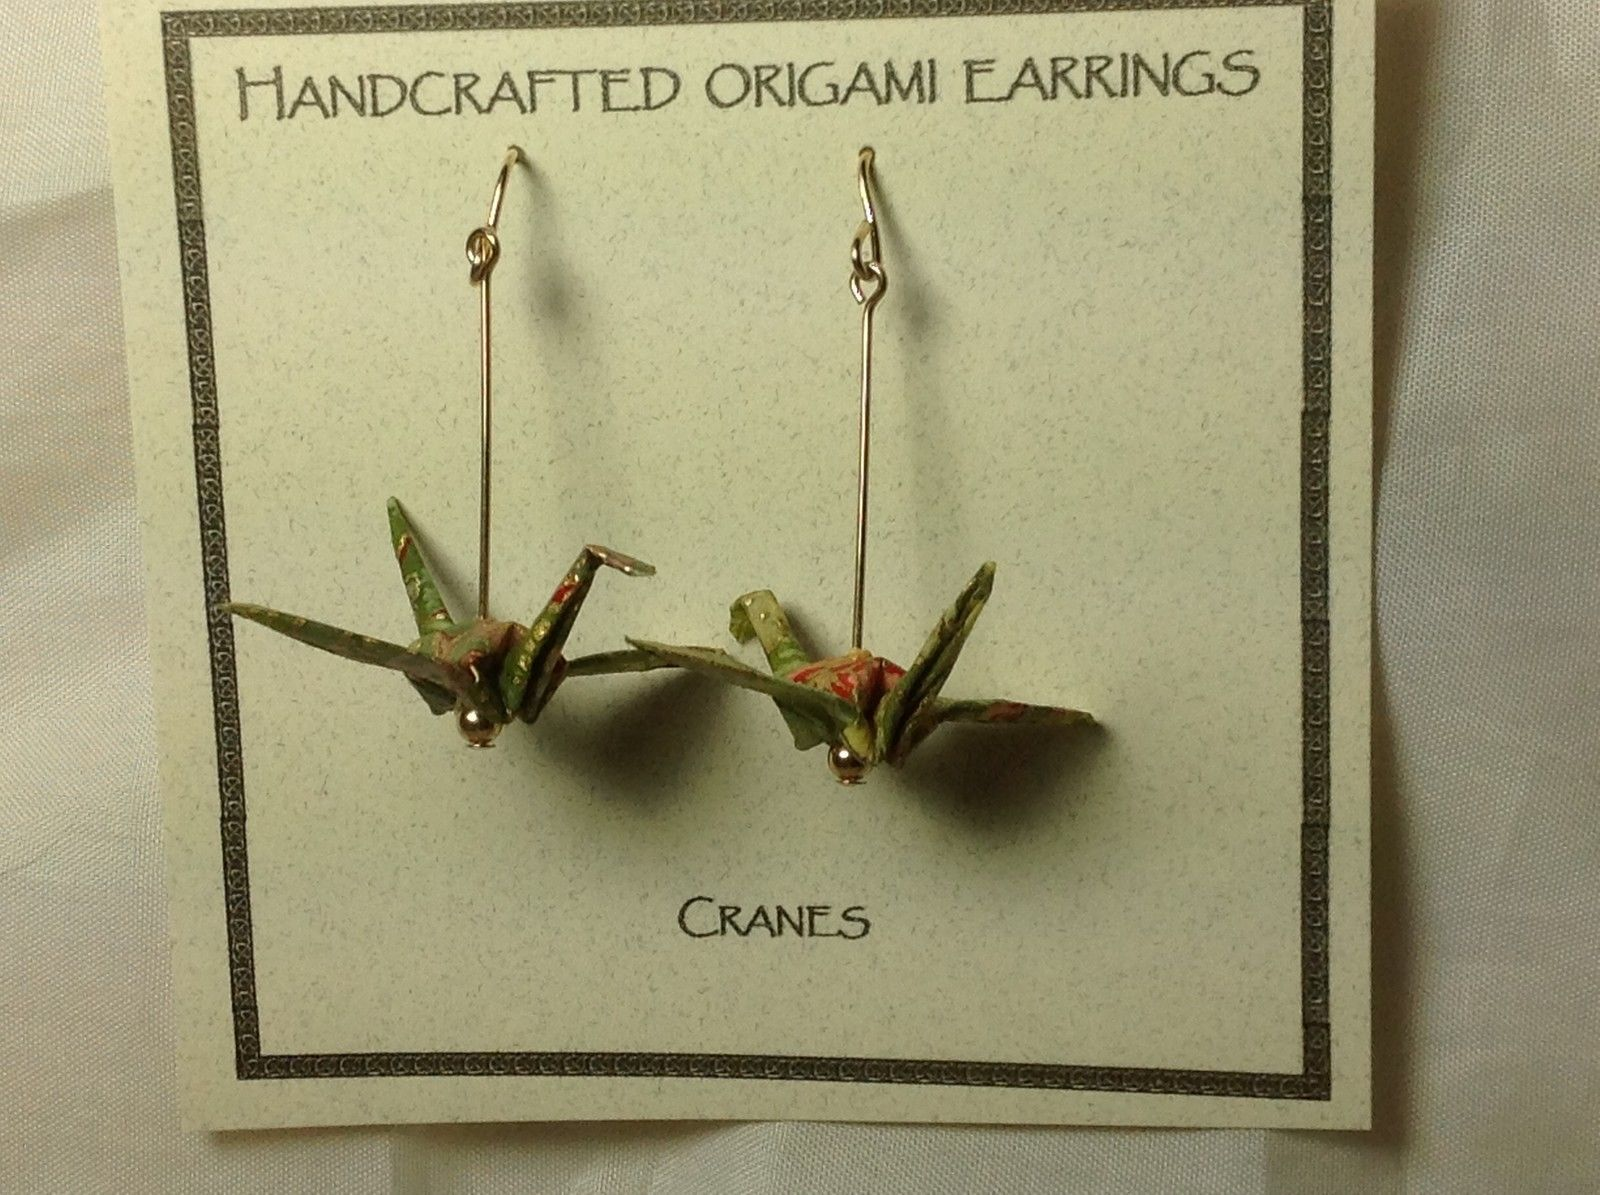 Handcrafted real gold origami crane earrings